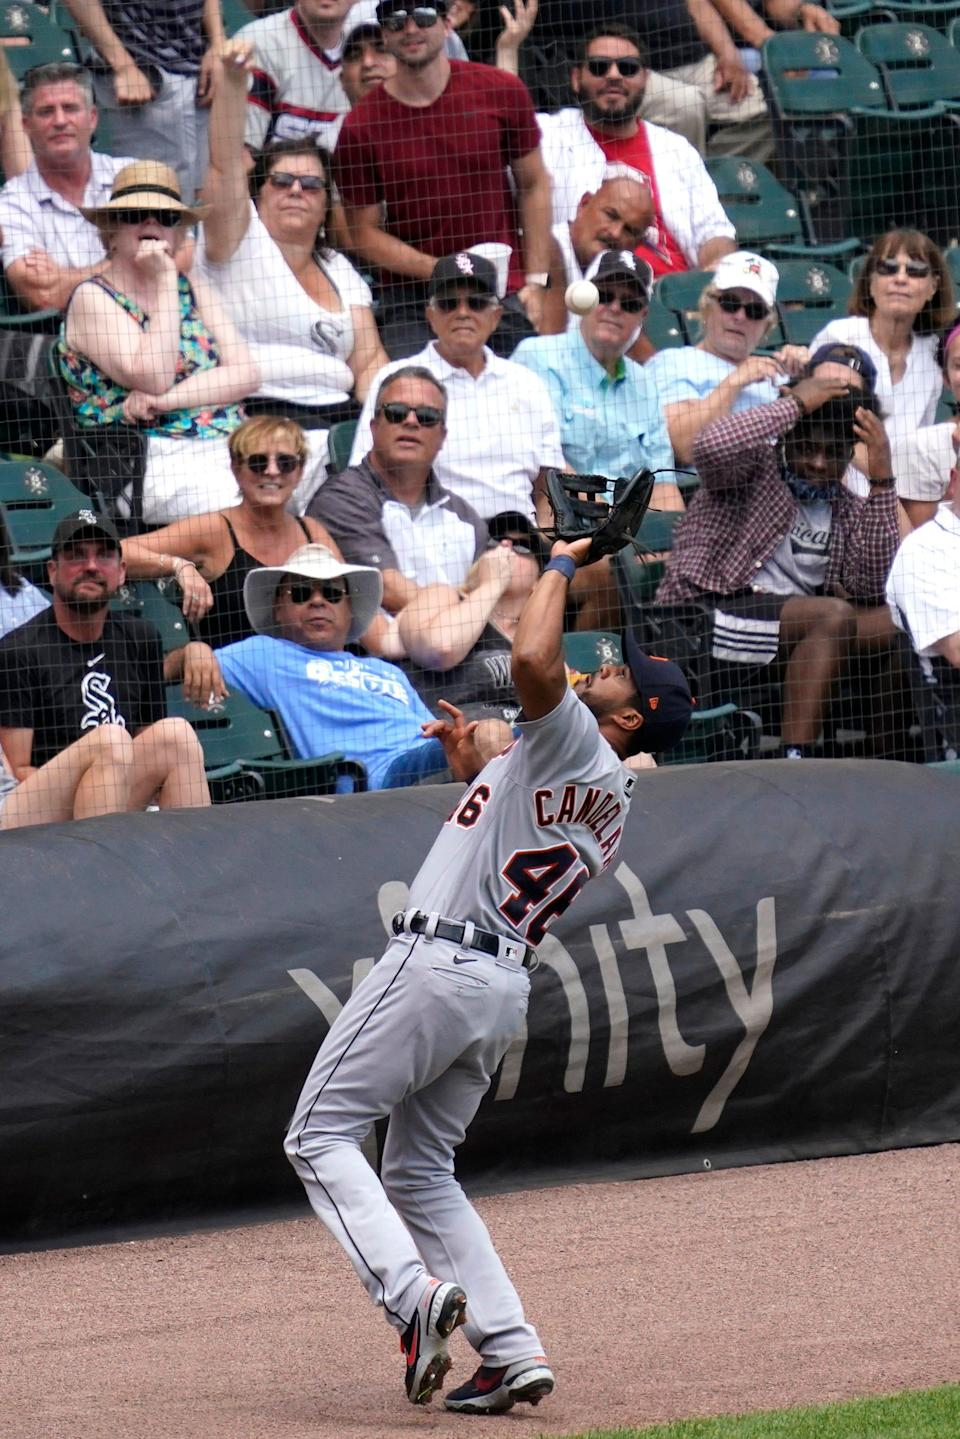 Tigers third baseman Jeimer Candelario catches a fly ball in foul territory during the first inning of the Tigers' 3-0 loss on Sunday, June 6, 2021, in Chicago.